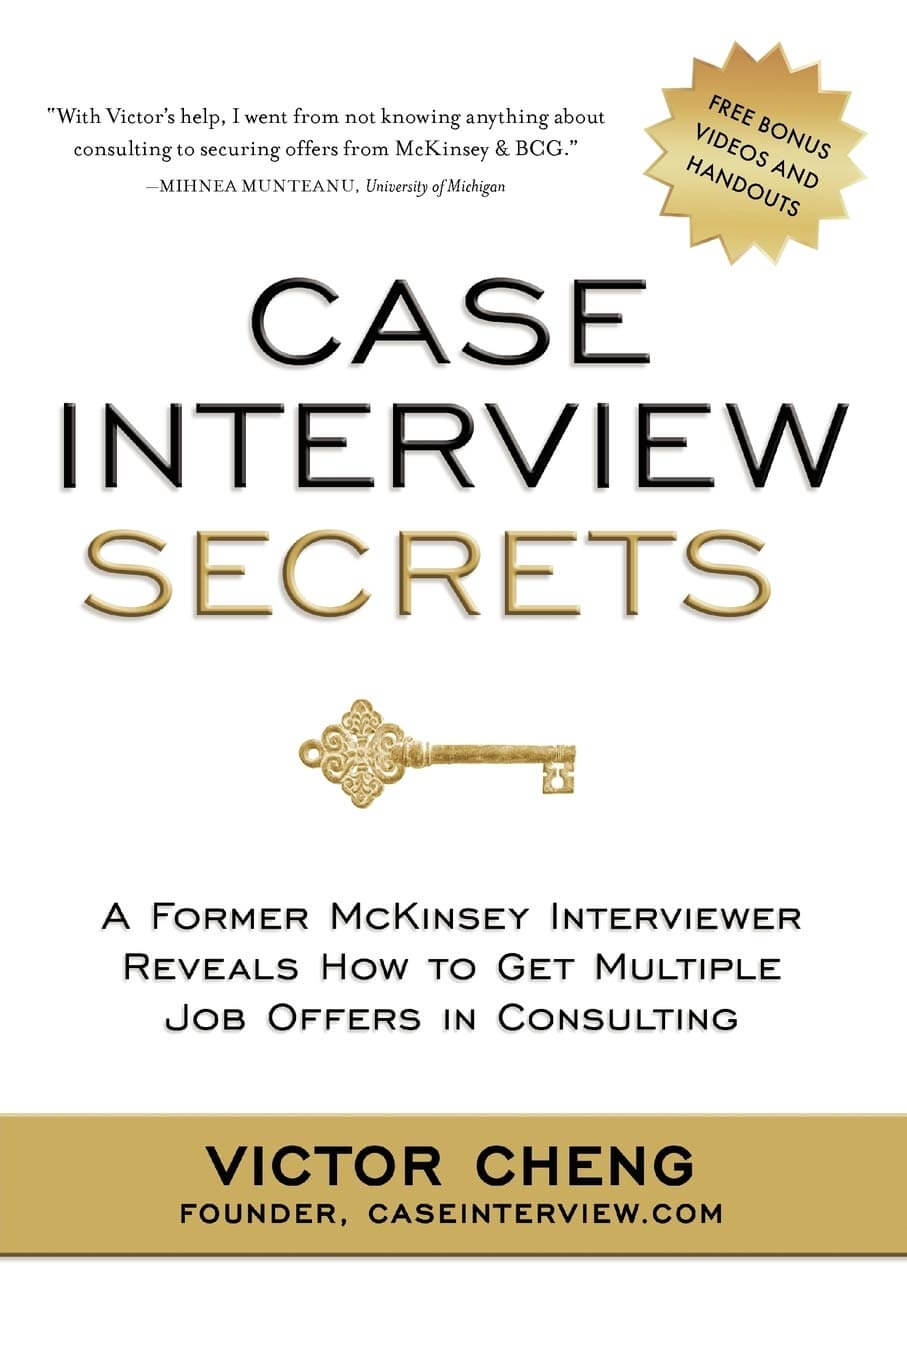 Case Interview Secrets Book Cover